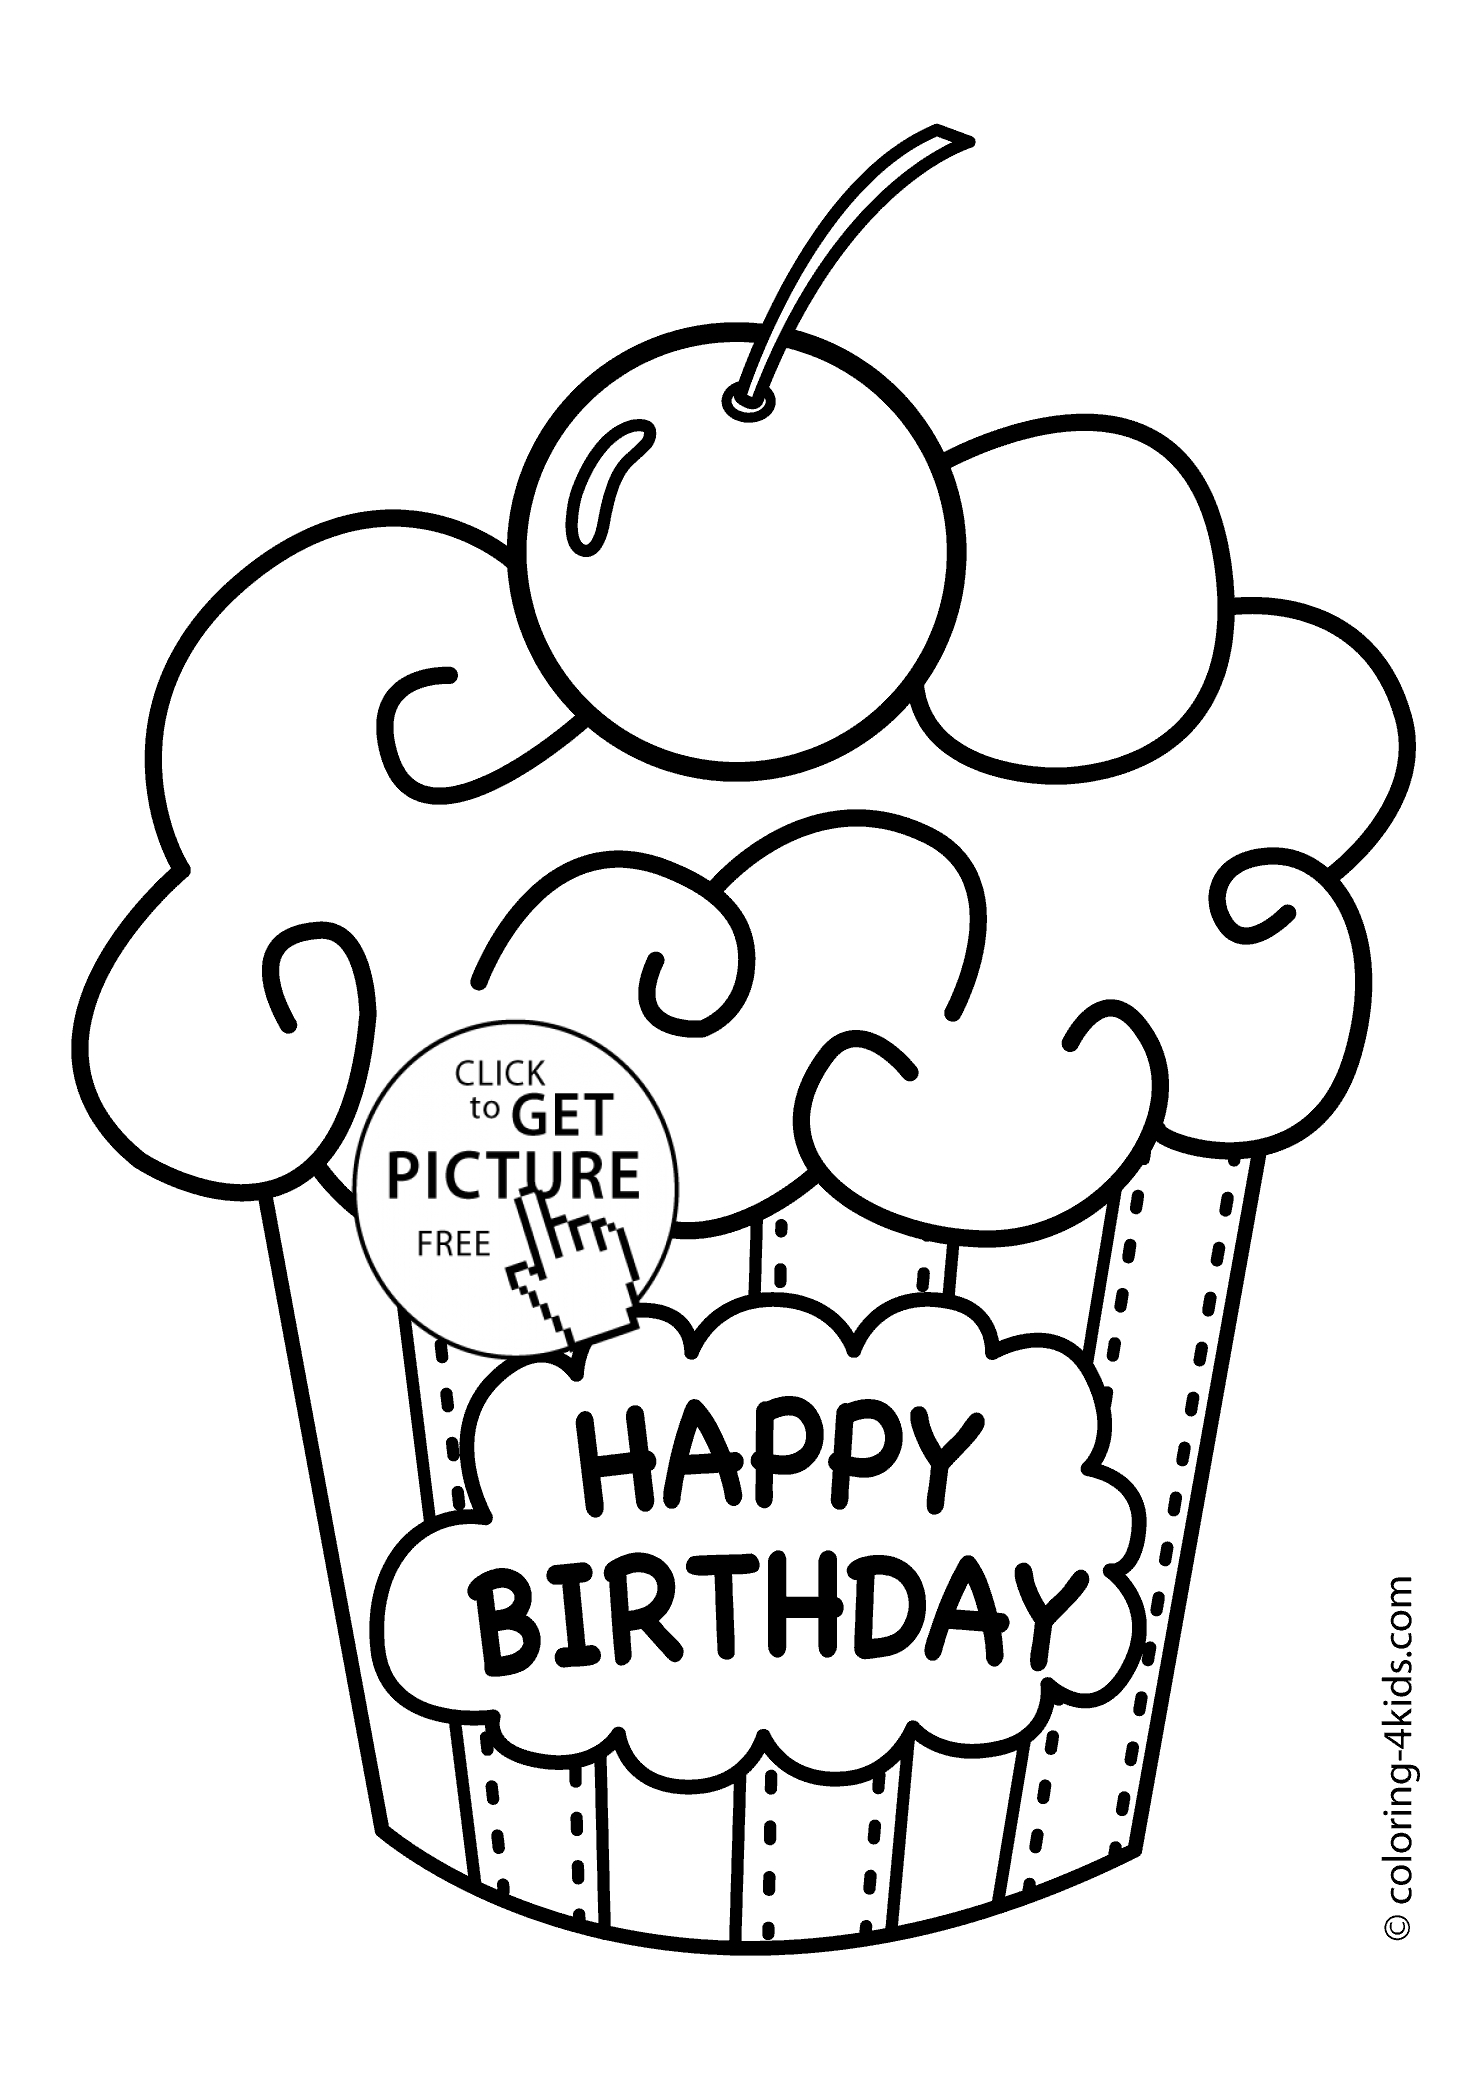 happy birthday sign coloring pages ; birthday-printable-coloring-pages-cake-happy-birthday-party-coloring-pages-muffin-coloring-pages-for-kids